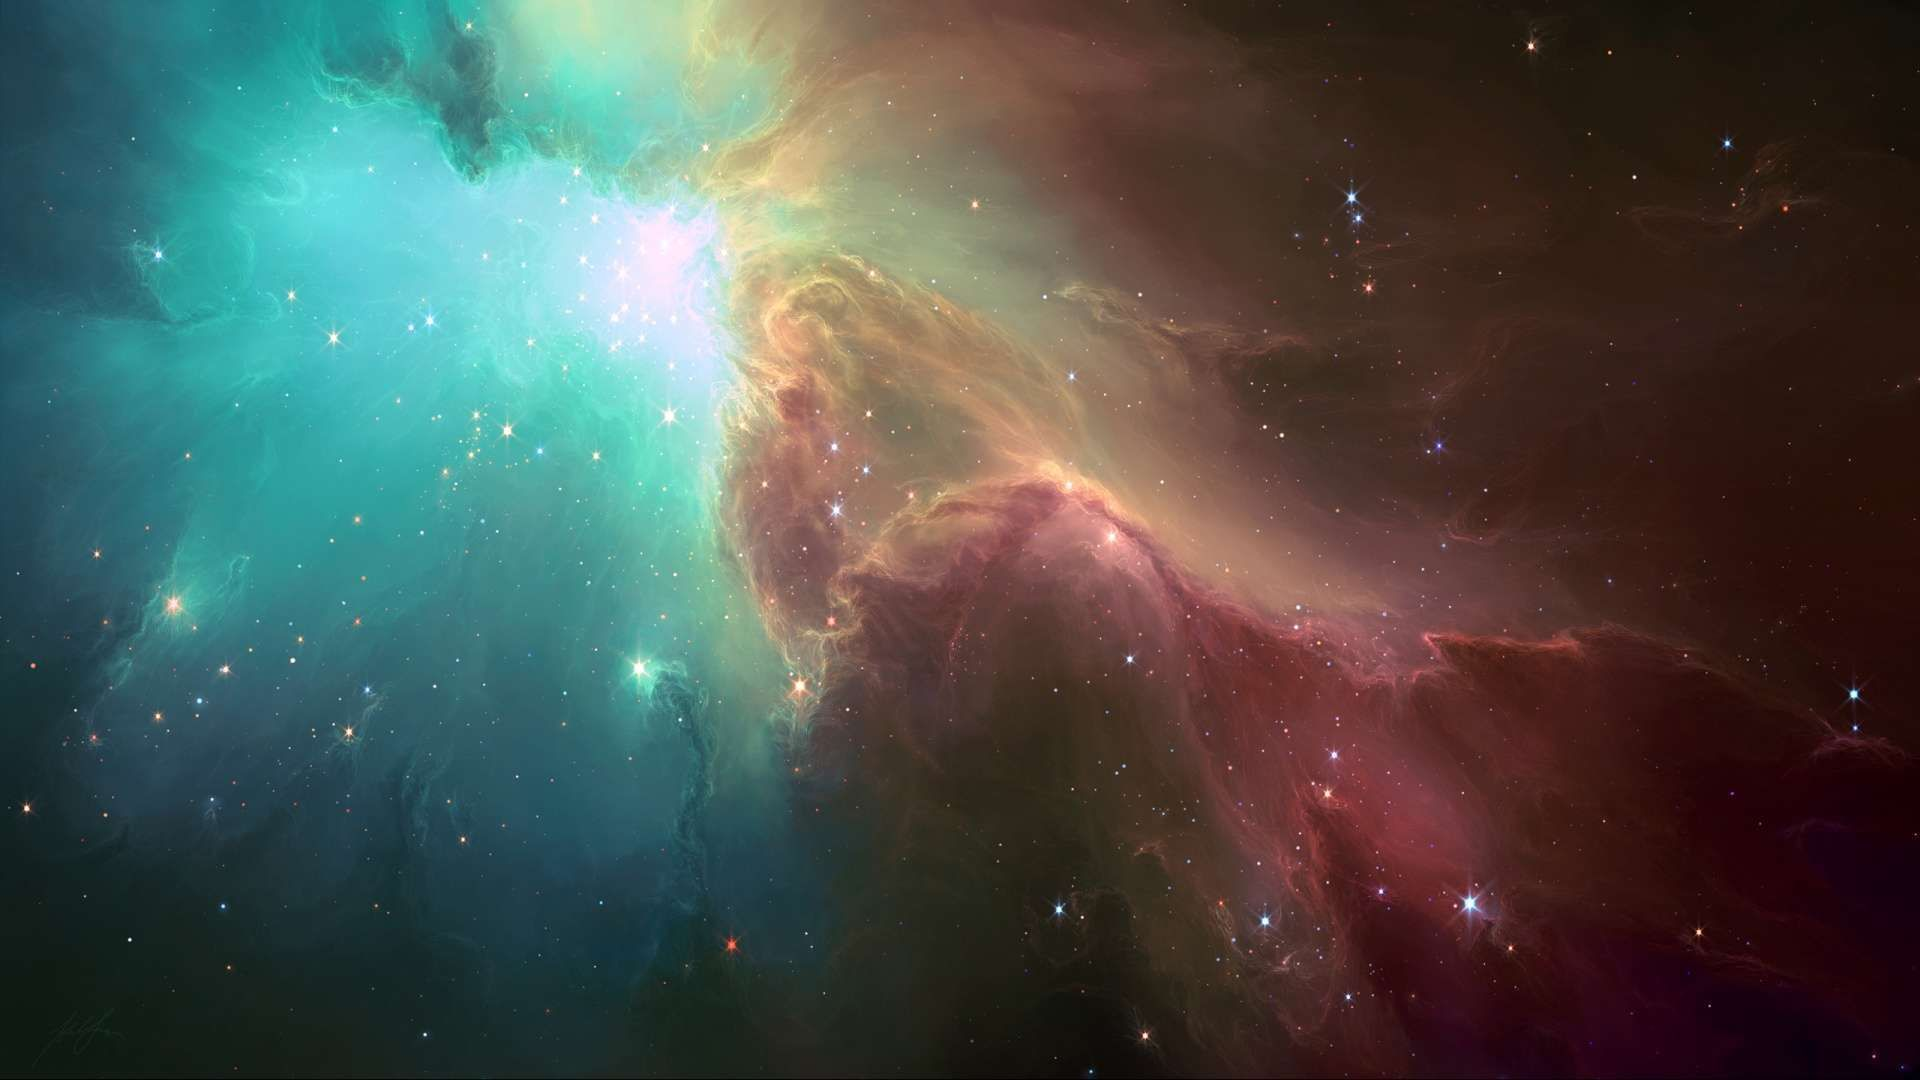 Nebulae Sky HD Wallpaper 1080p Nebula wallpaper